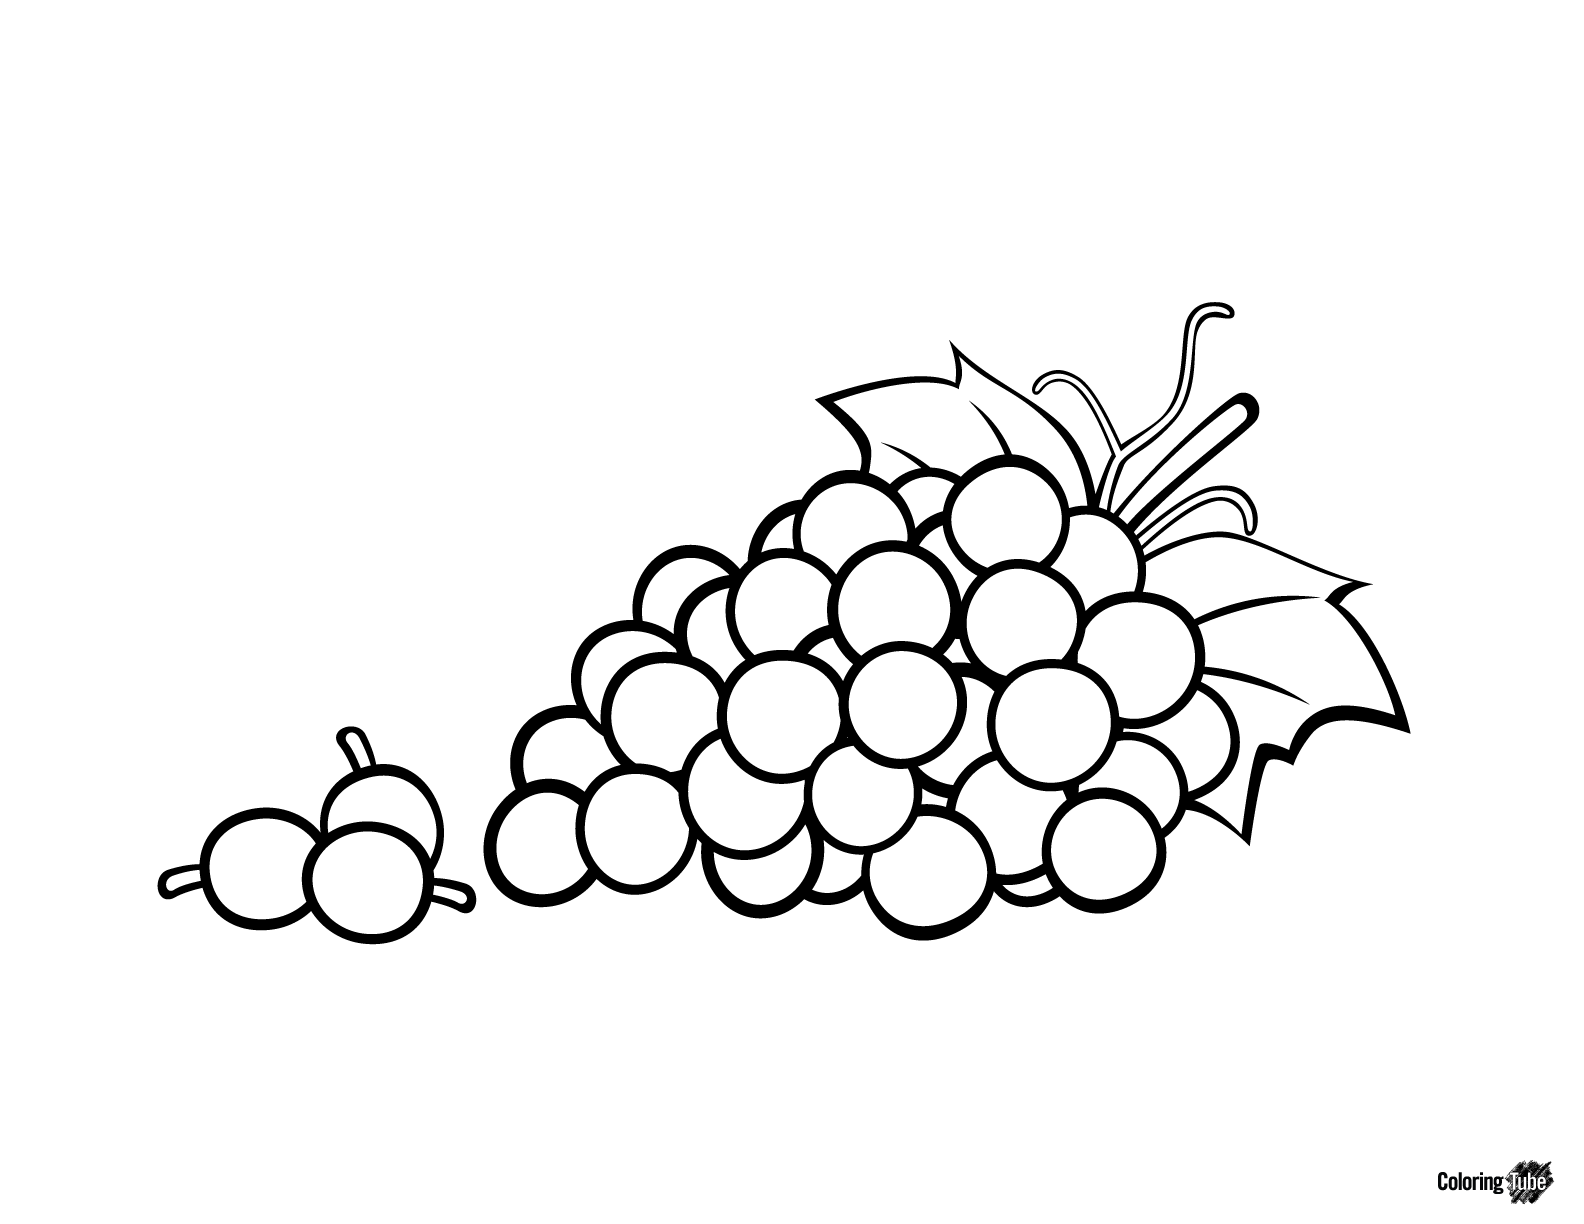 Pencil Drawing Grapes at GetDrawings.com | Free for personal use ...